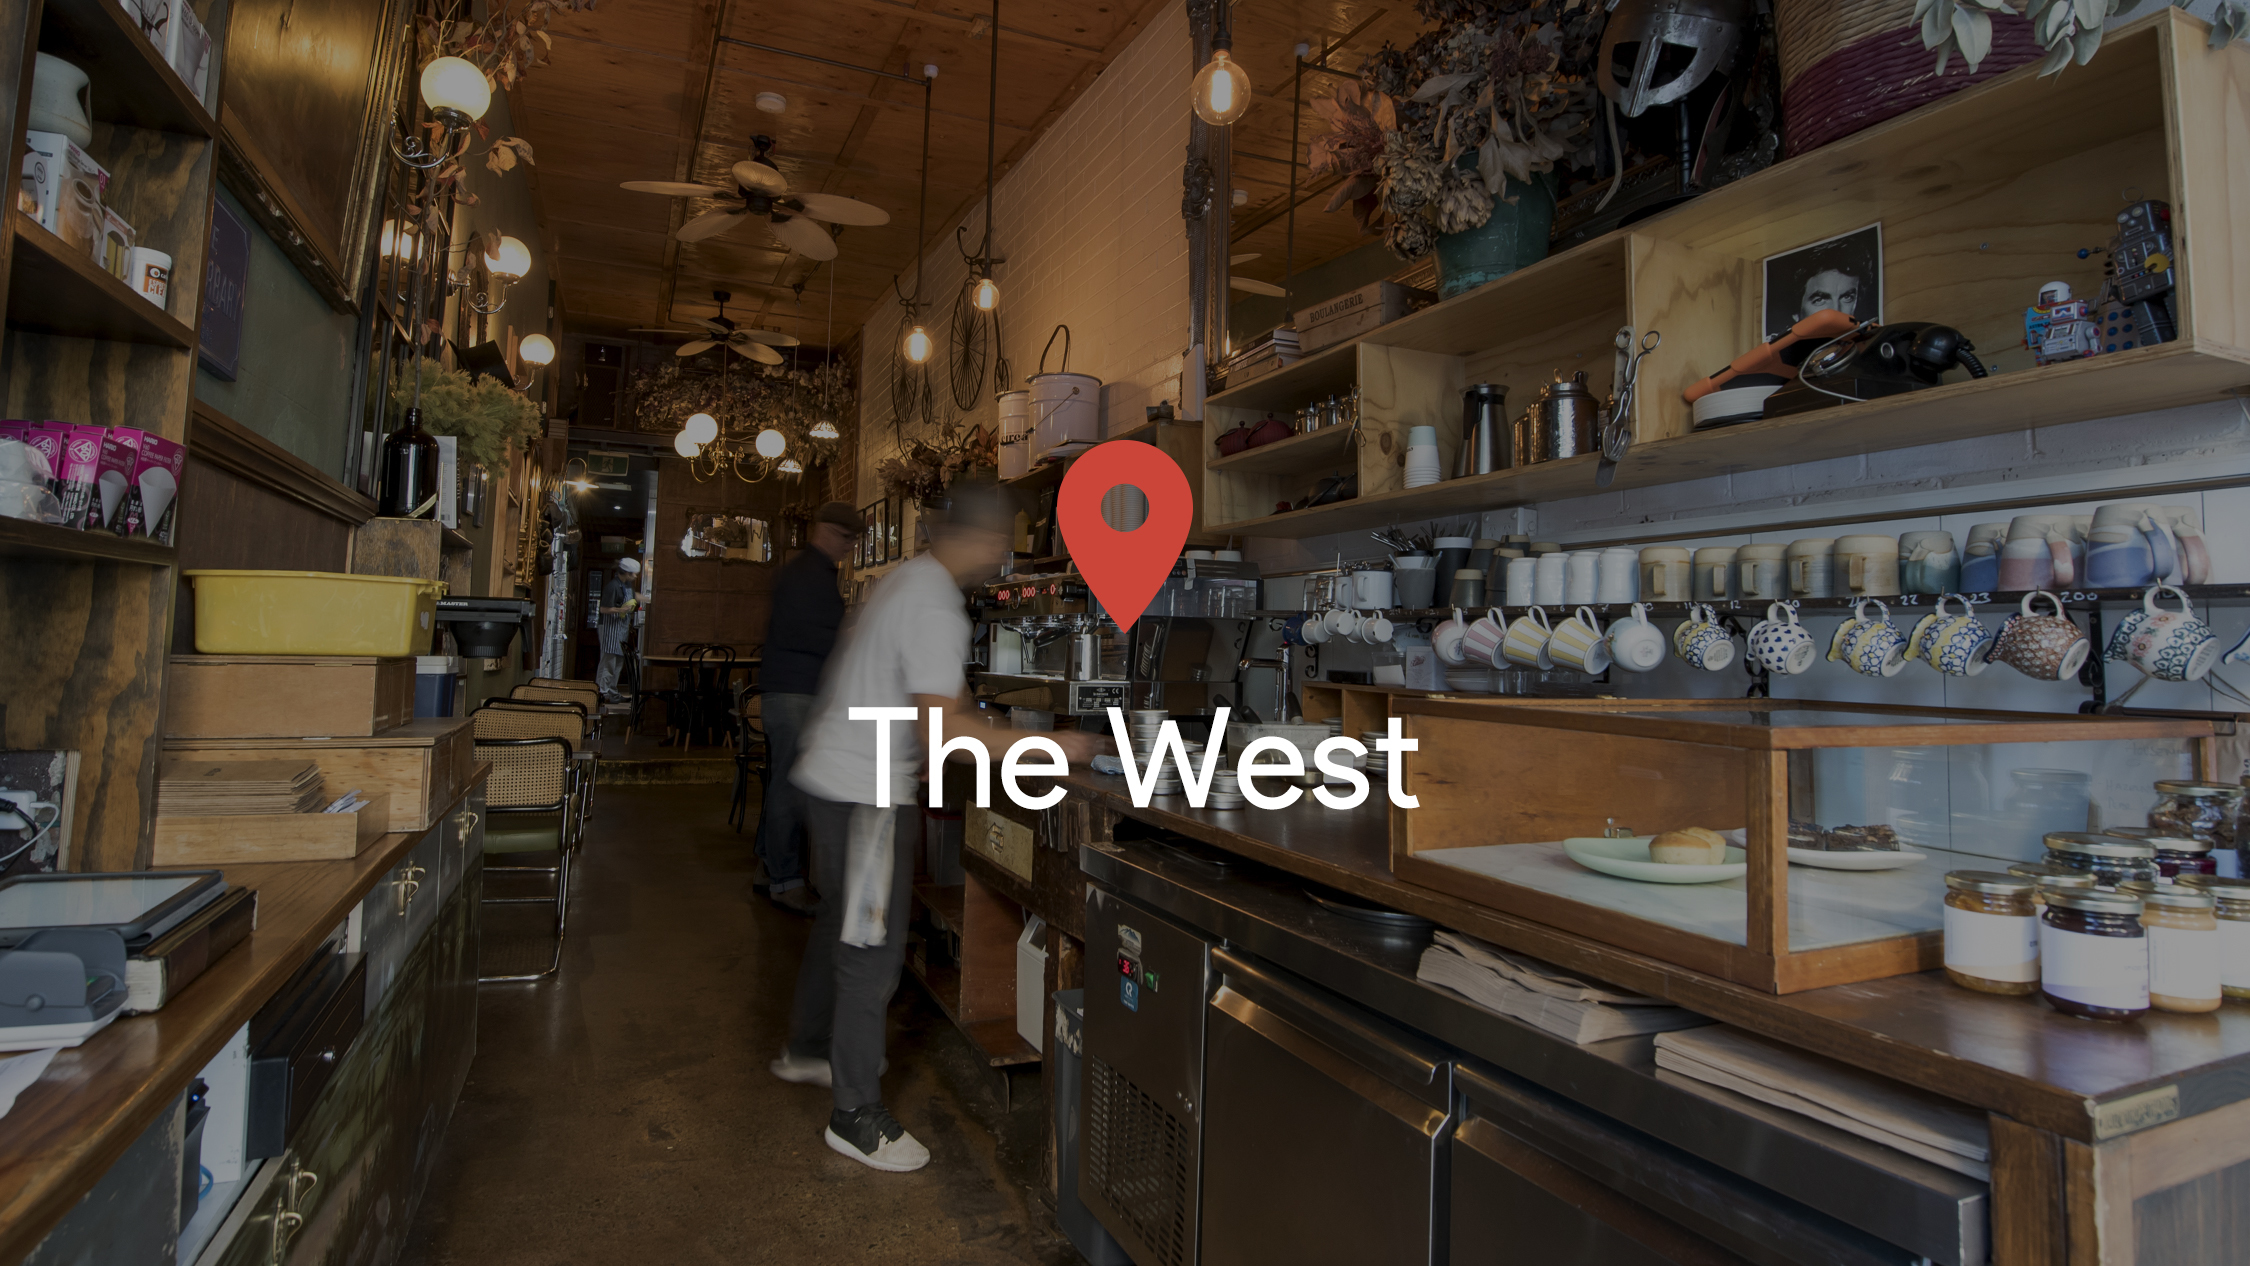 Drop a pin in: The West